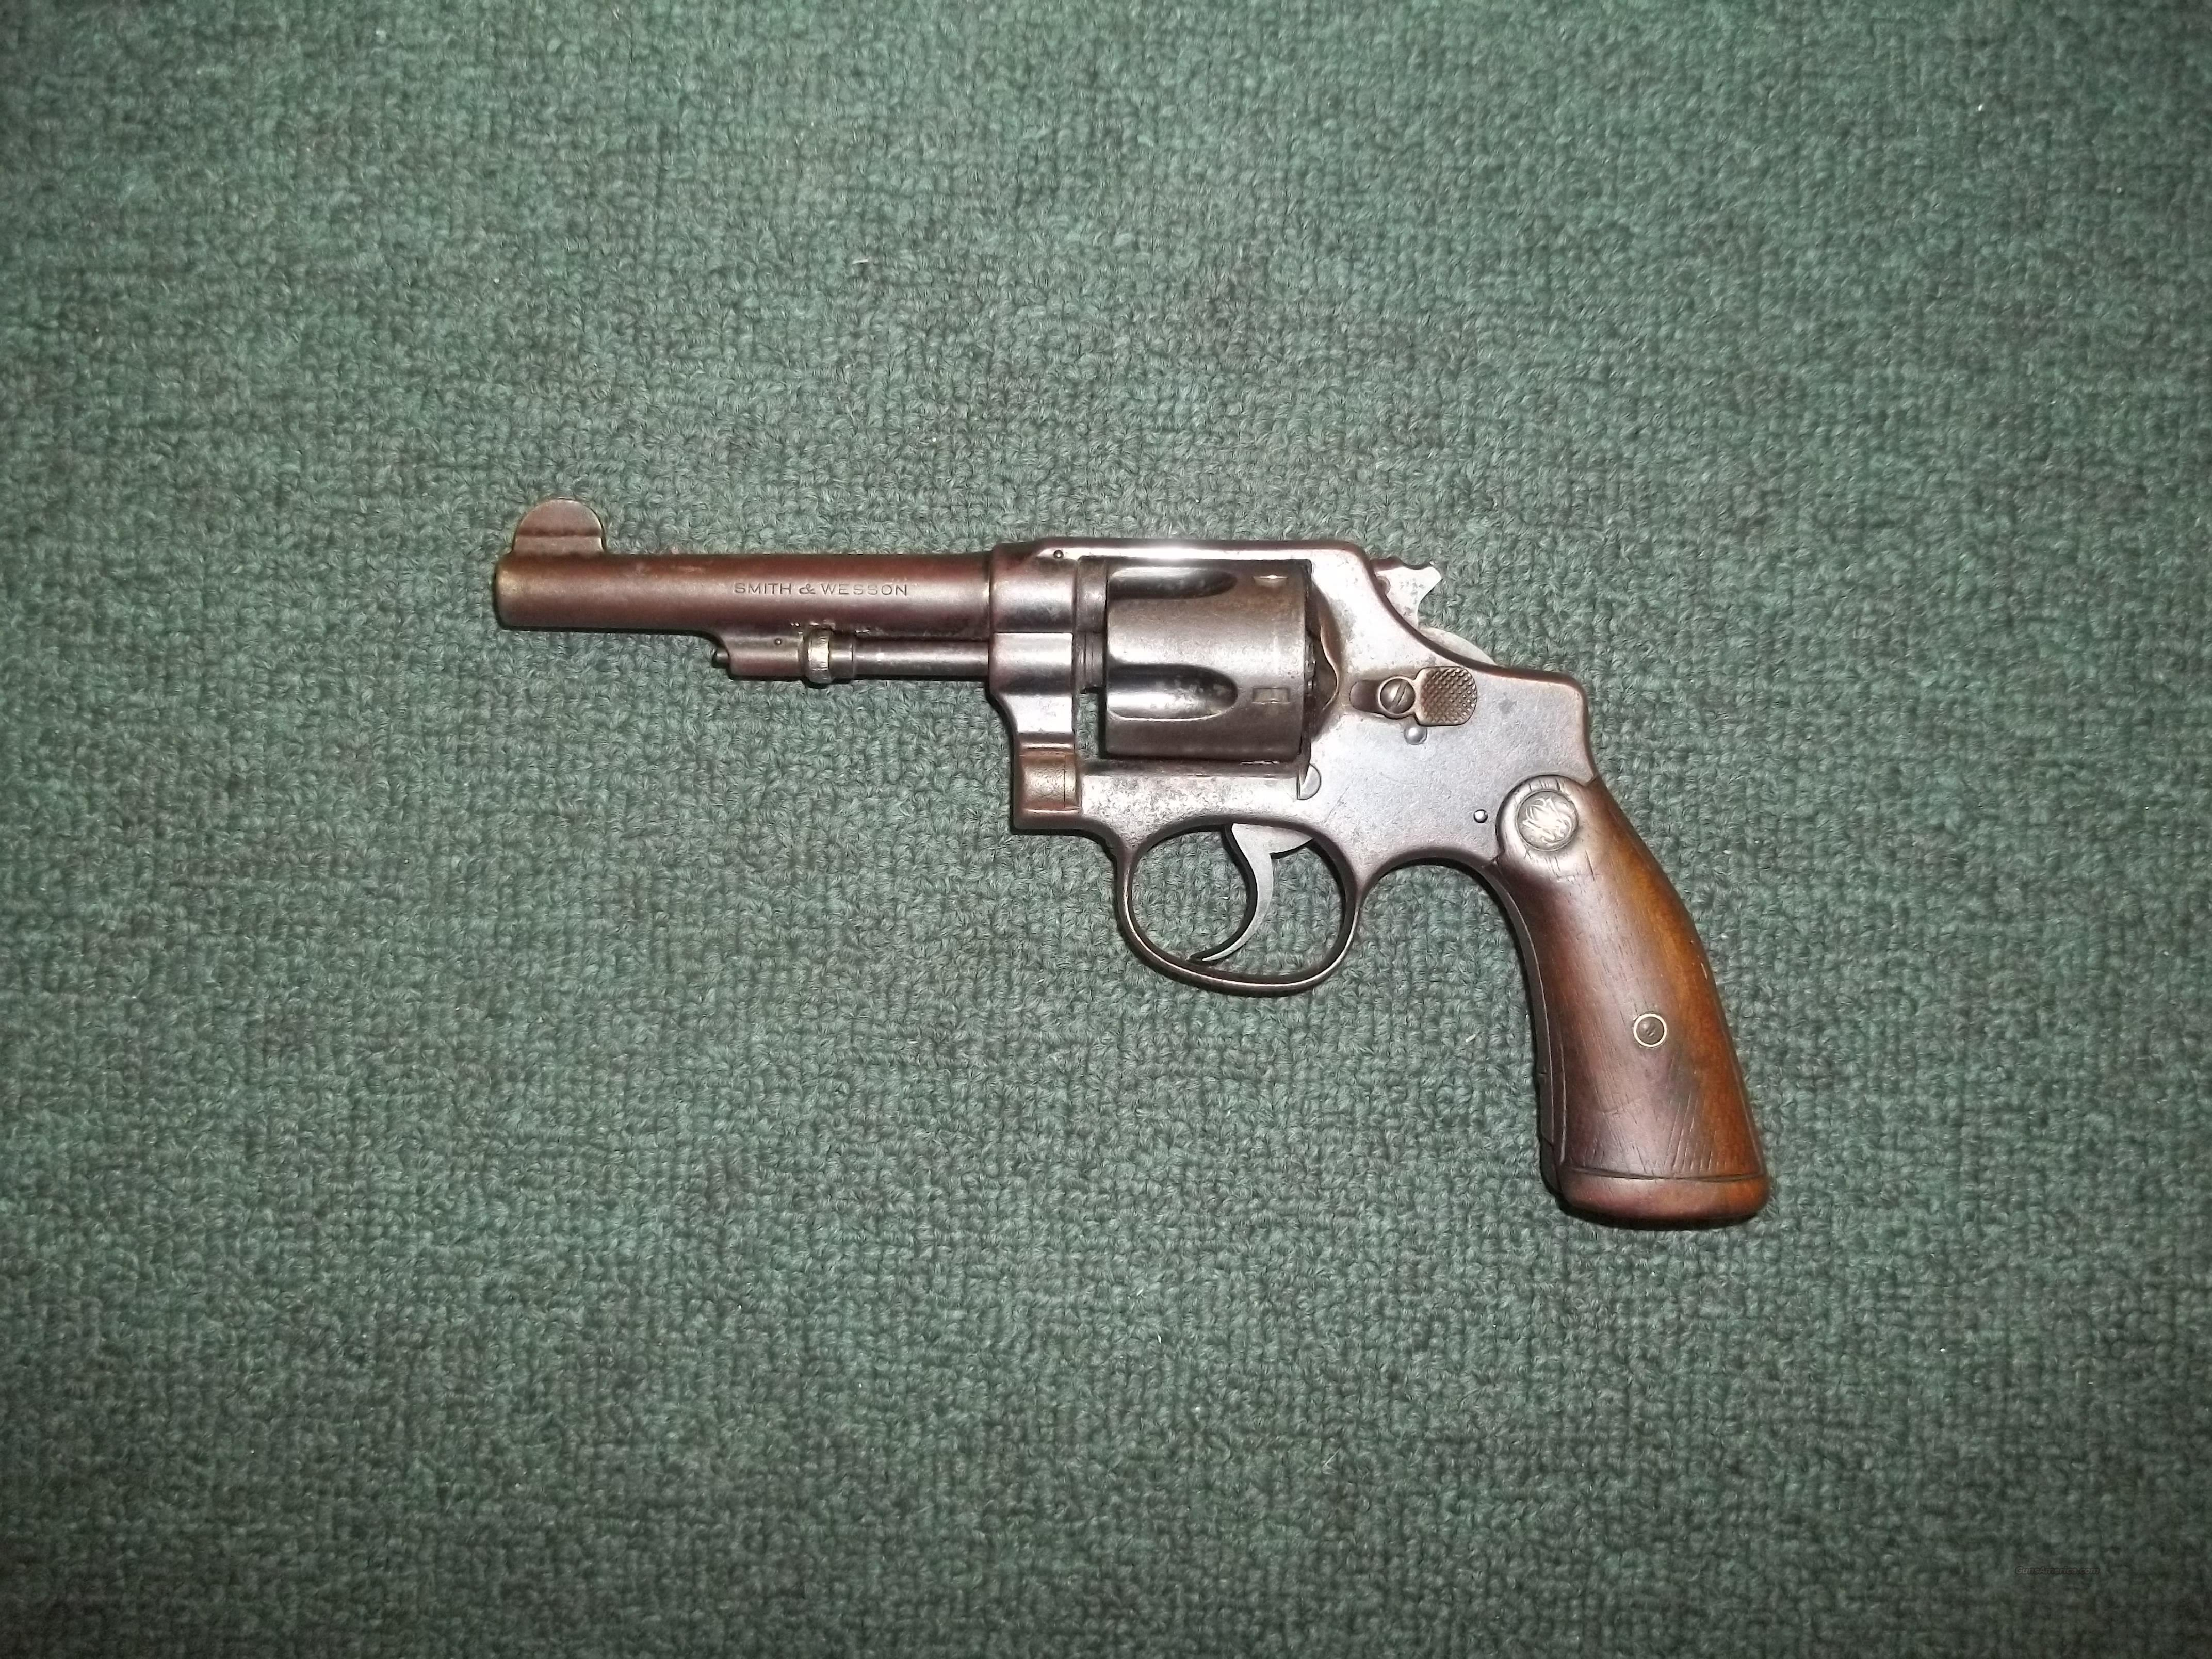 Smith & Wesson Regulation Police  Guns > Pistols > Smith & Wesson Revolvers > Pre-1945